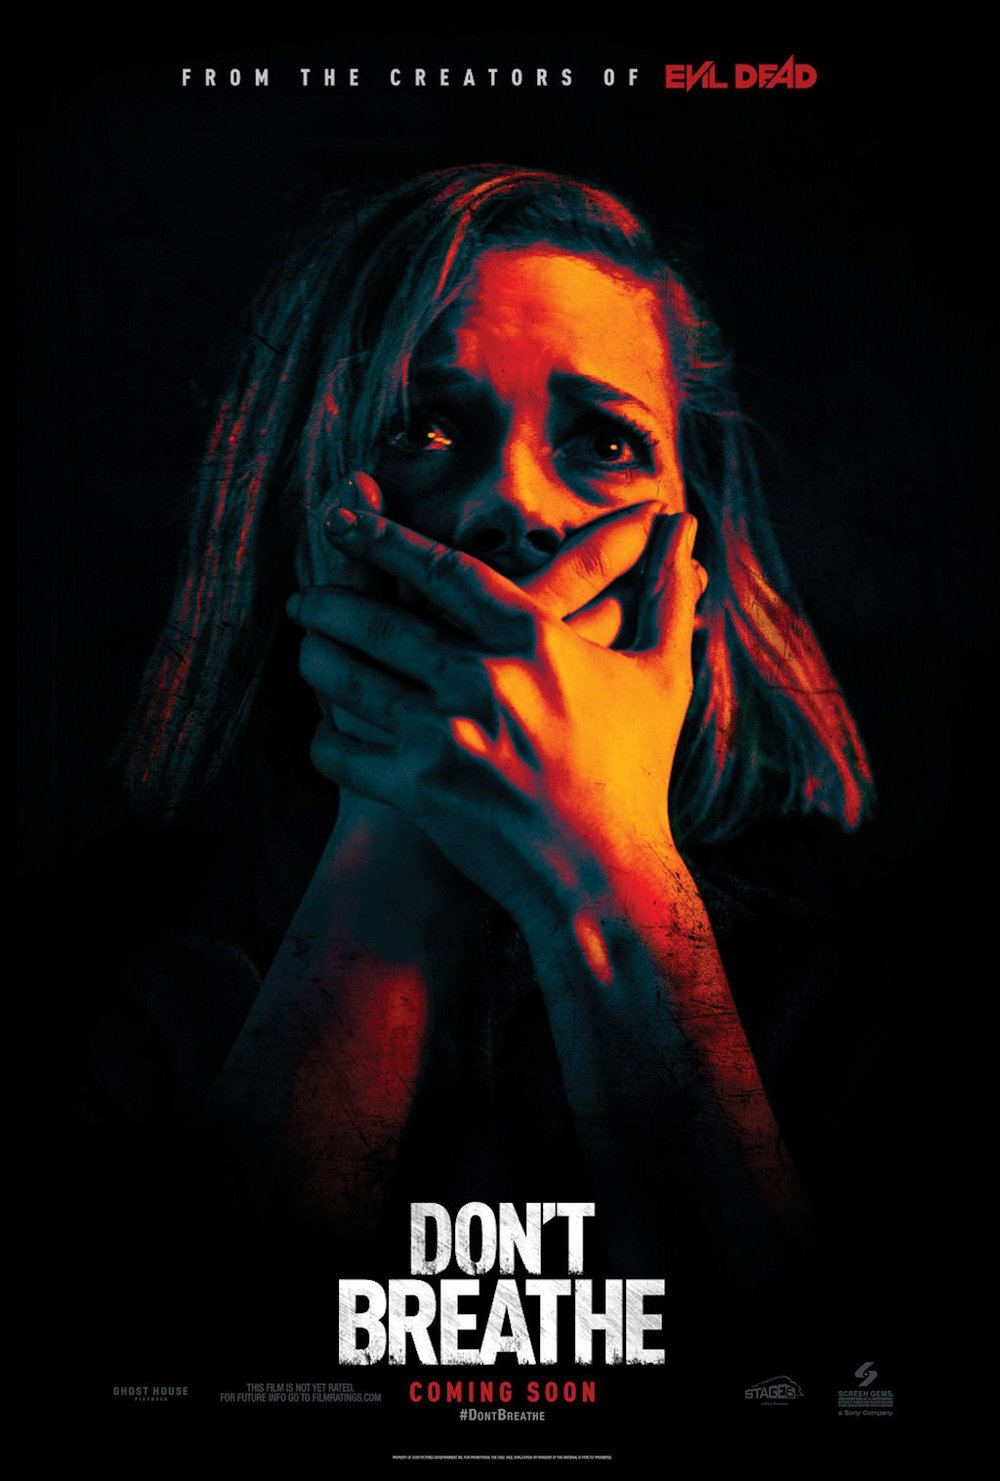 Don't breath poster.jpg